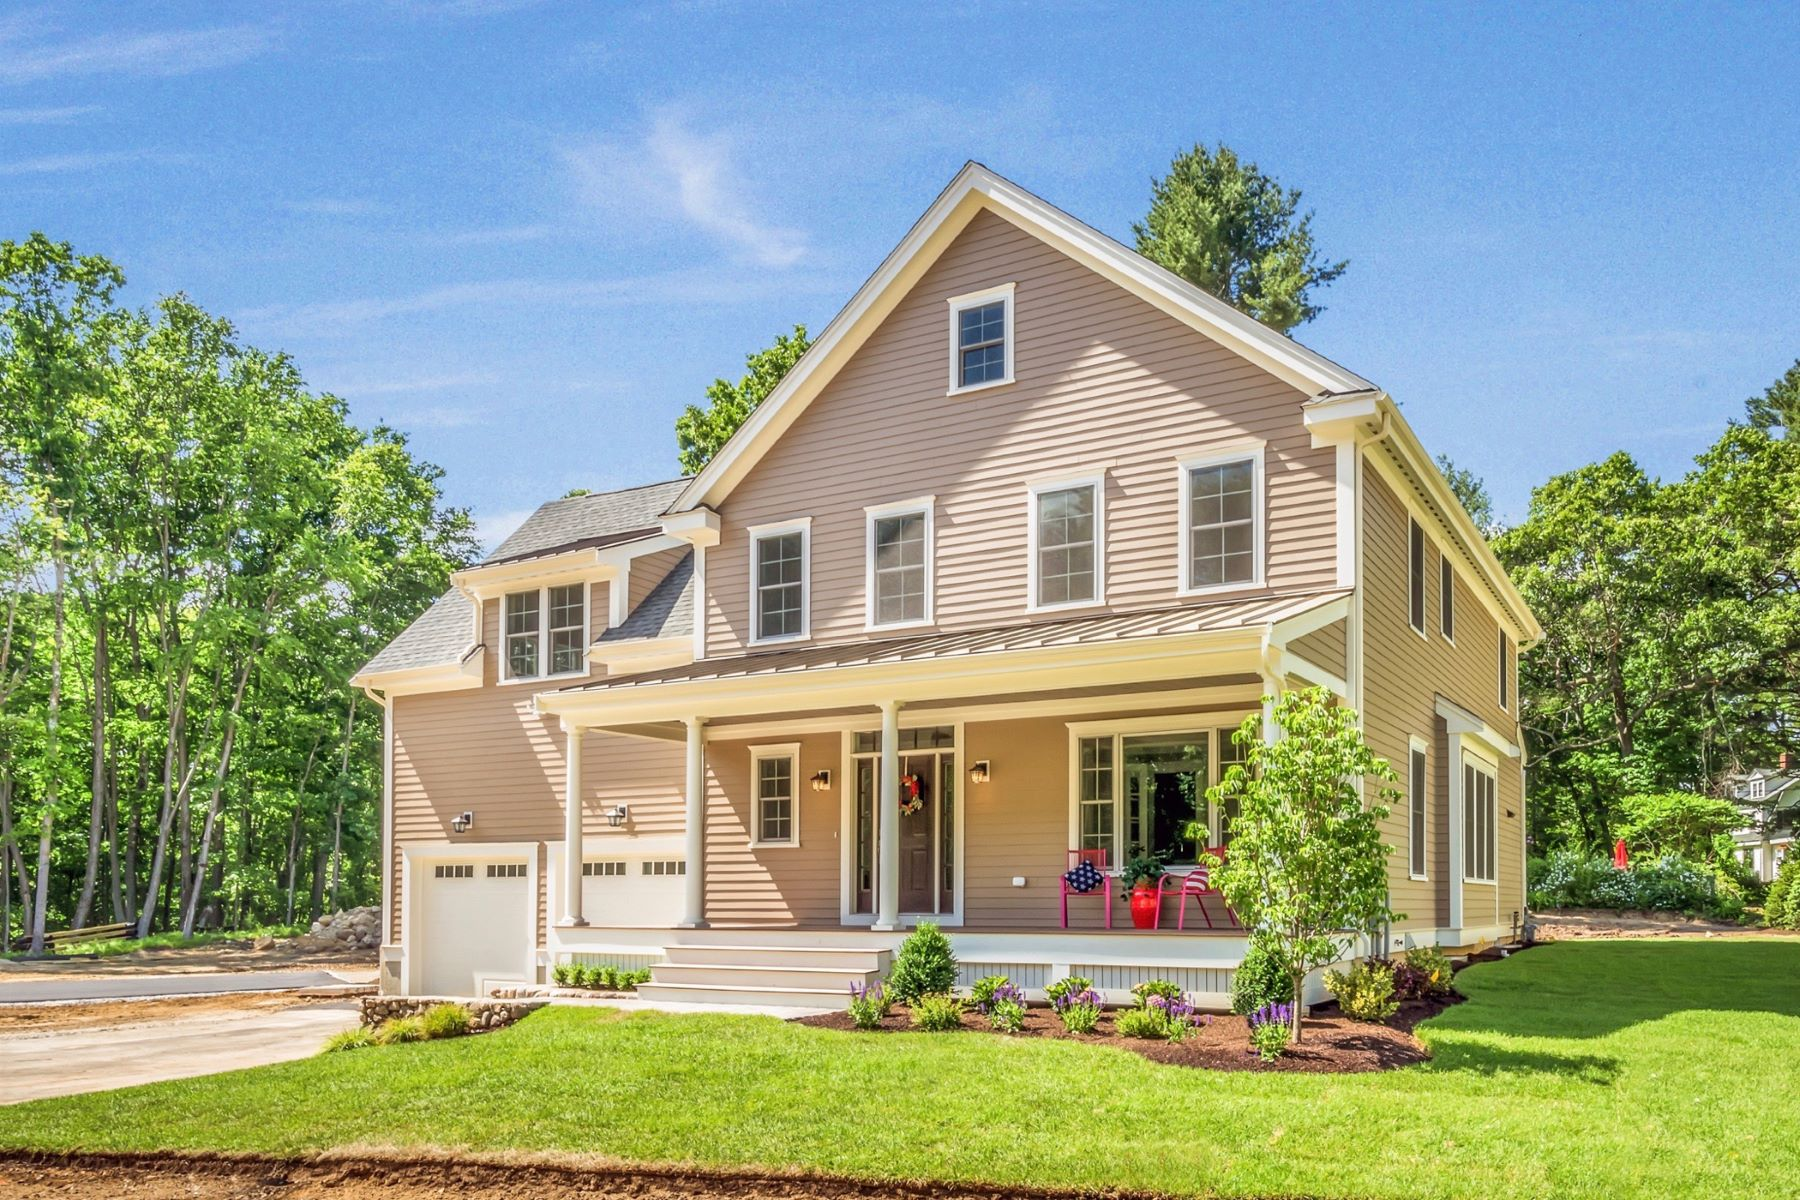 Single Family Home for Active at 7 Hosmer Way, Bedford 7 Hosmer Way Bedford, Massachusetts 01730 United States